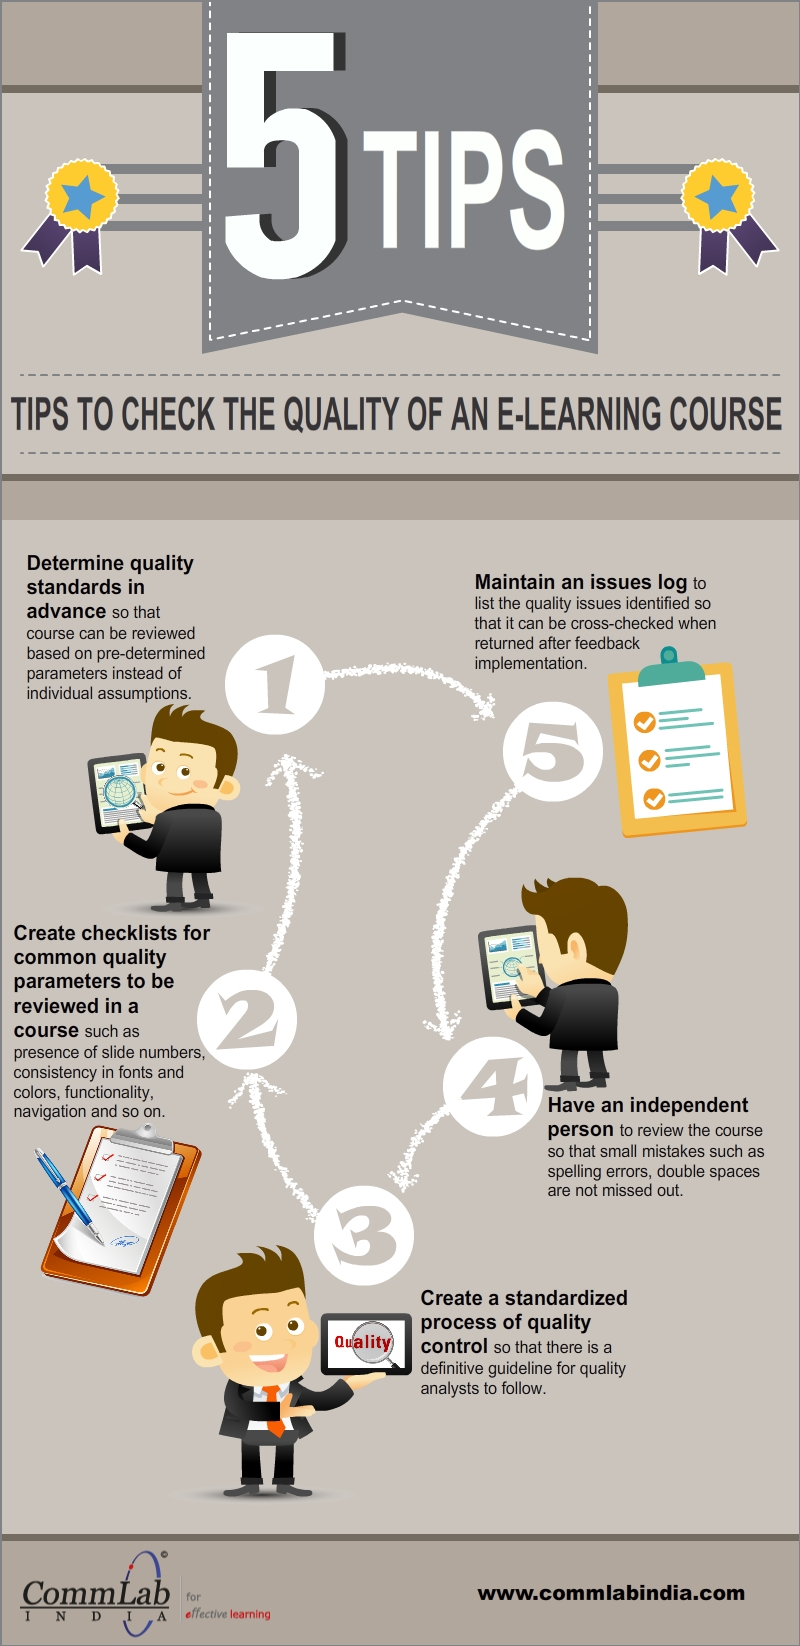 5 Tips to Check the Quality of an E-learning Course